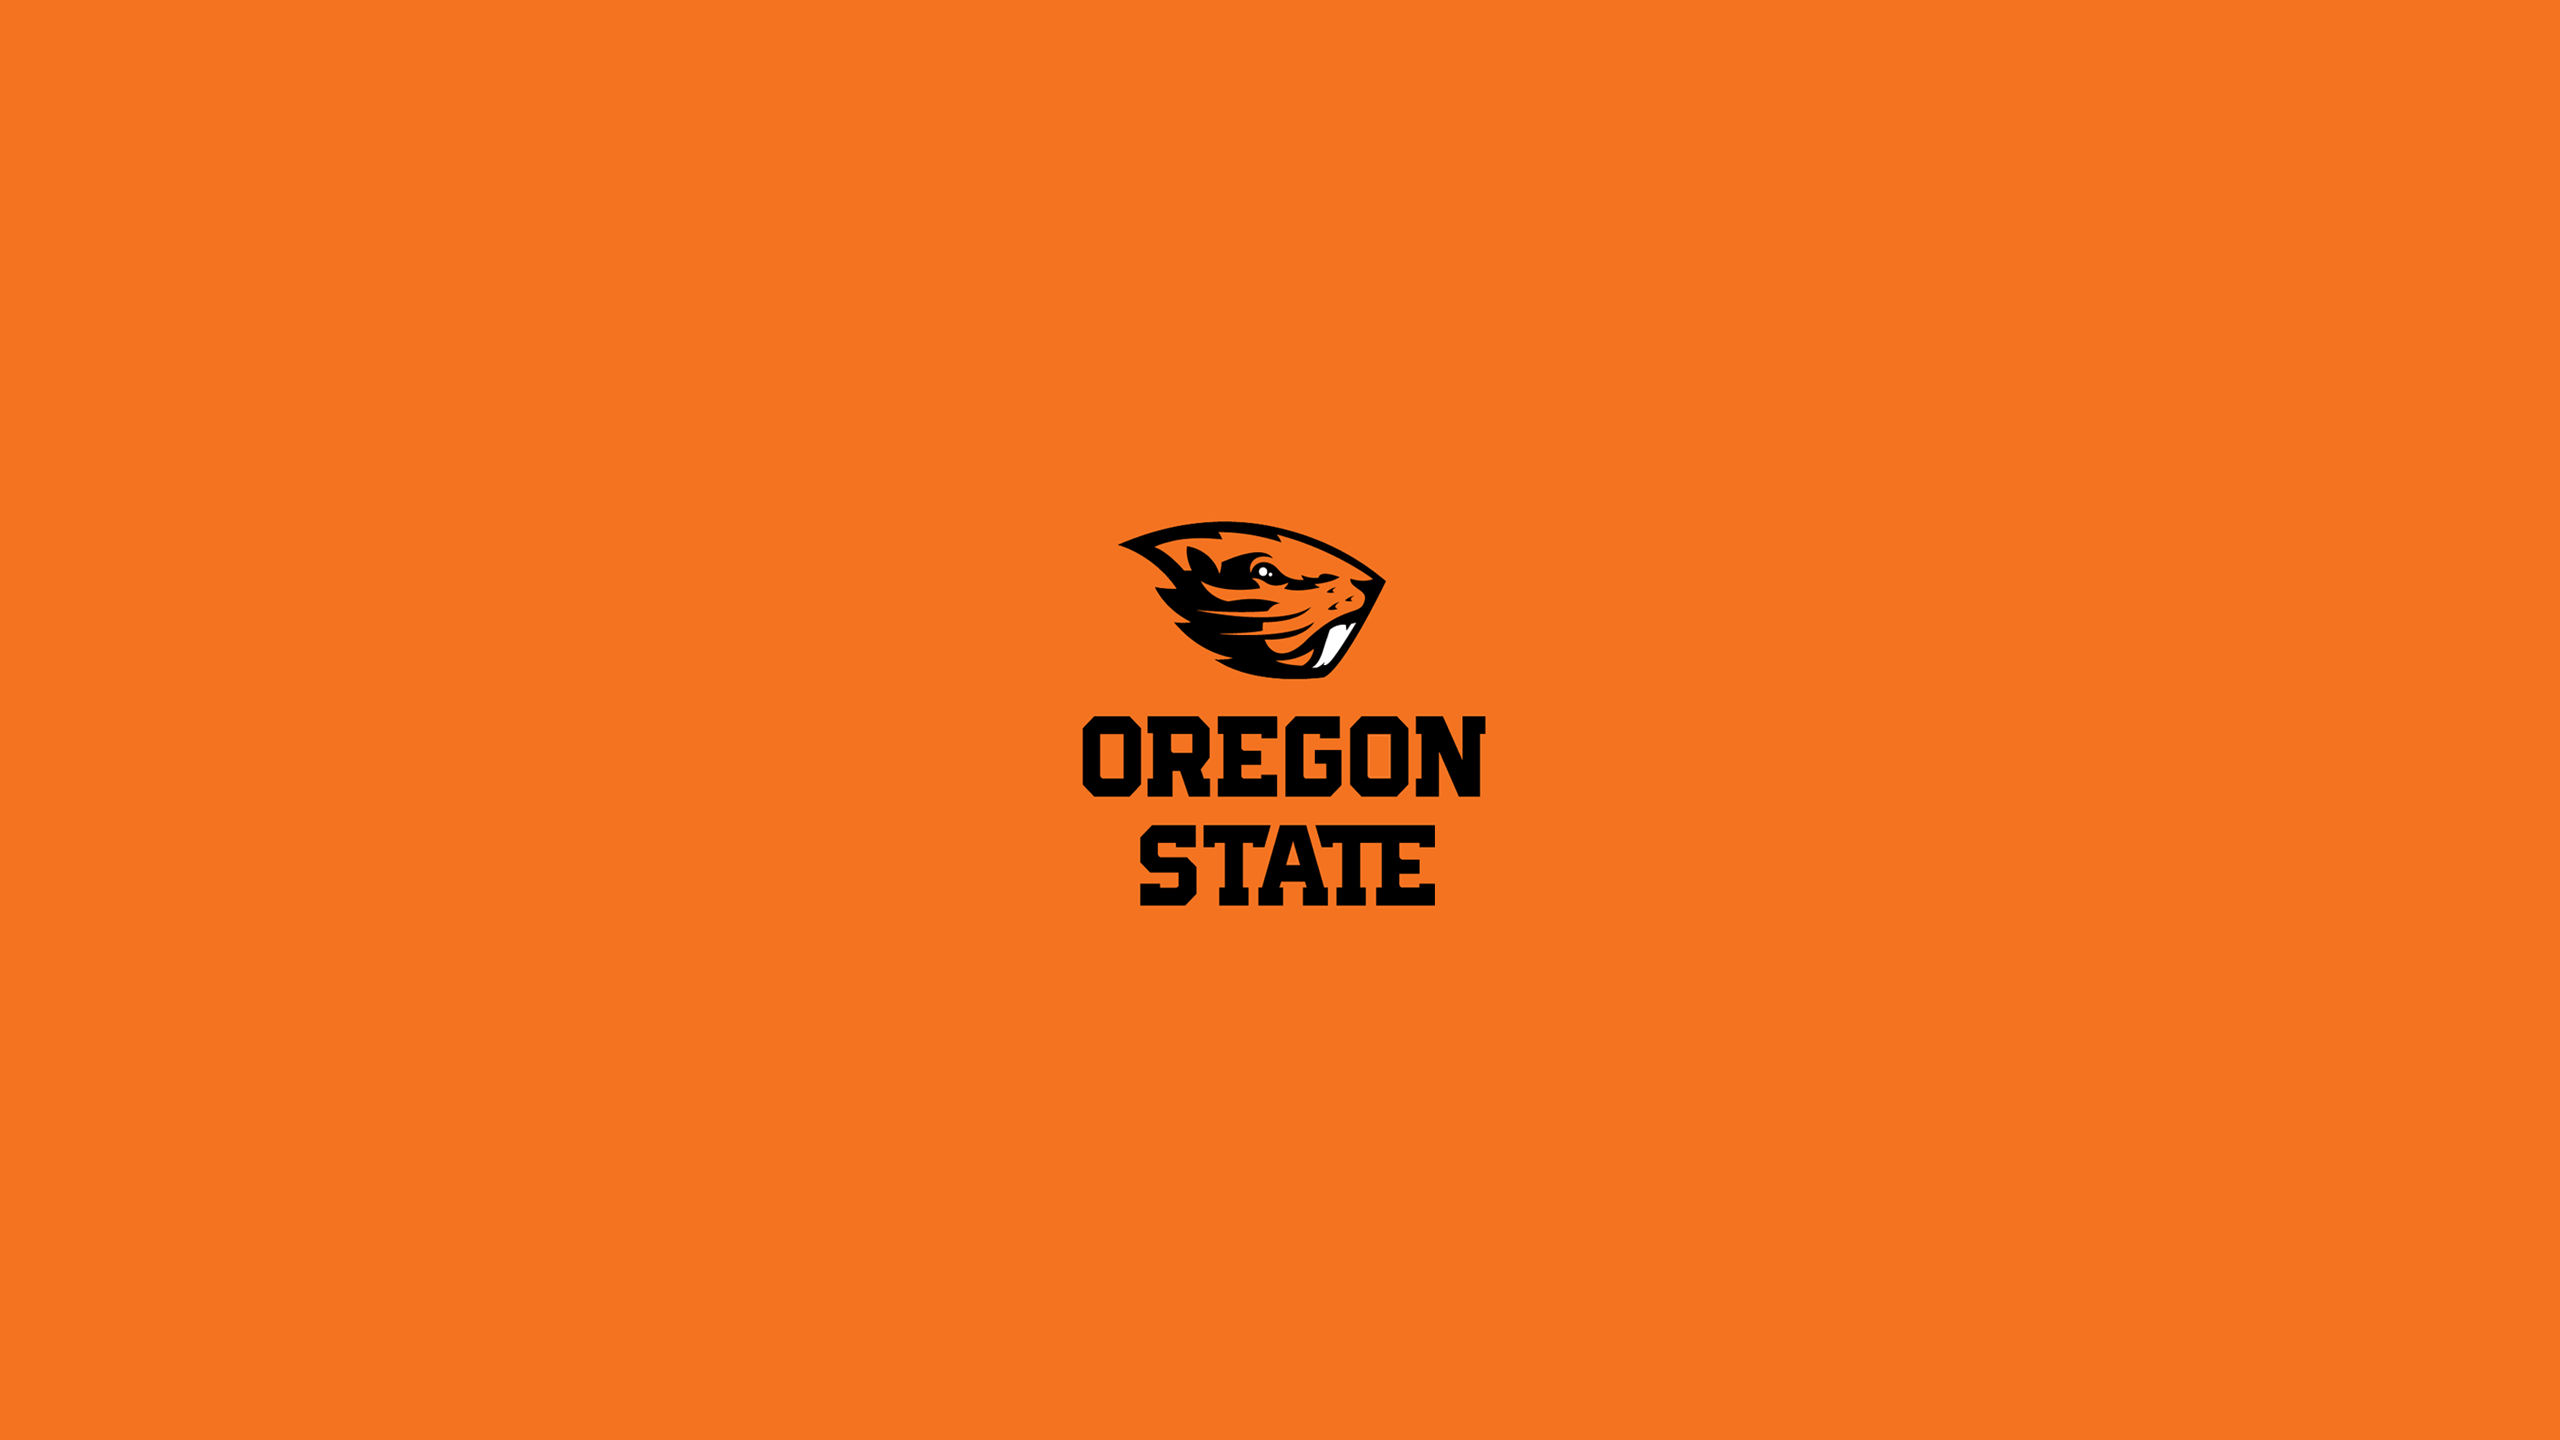 Download Oregon State Wallpaper Gallery